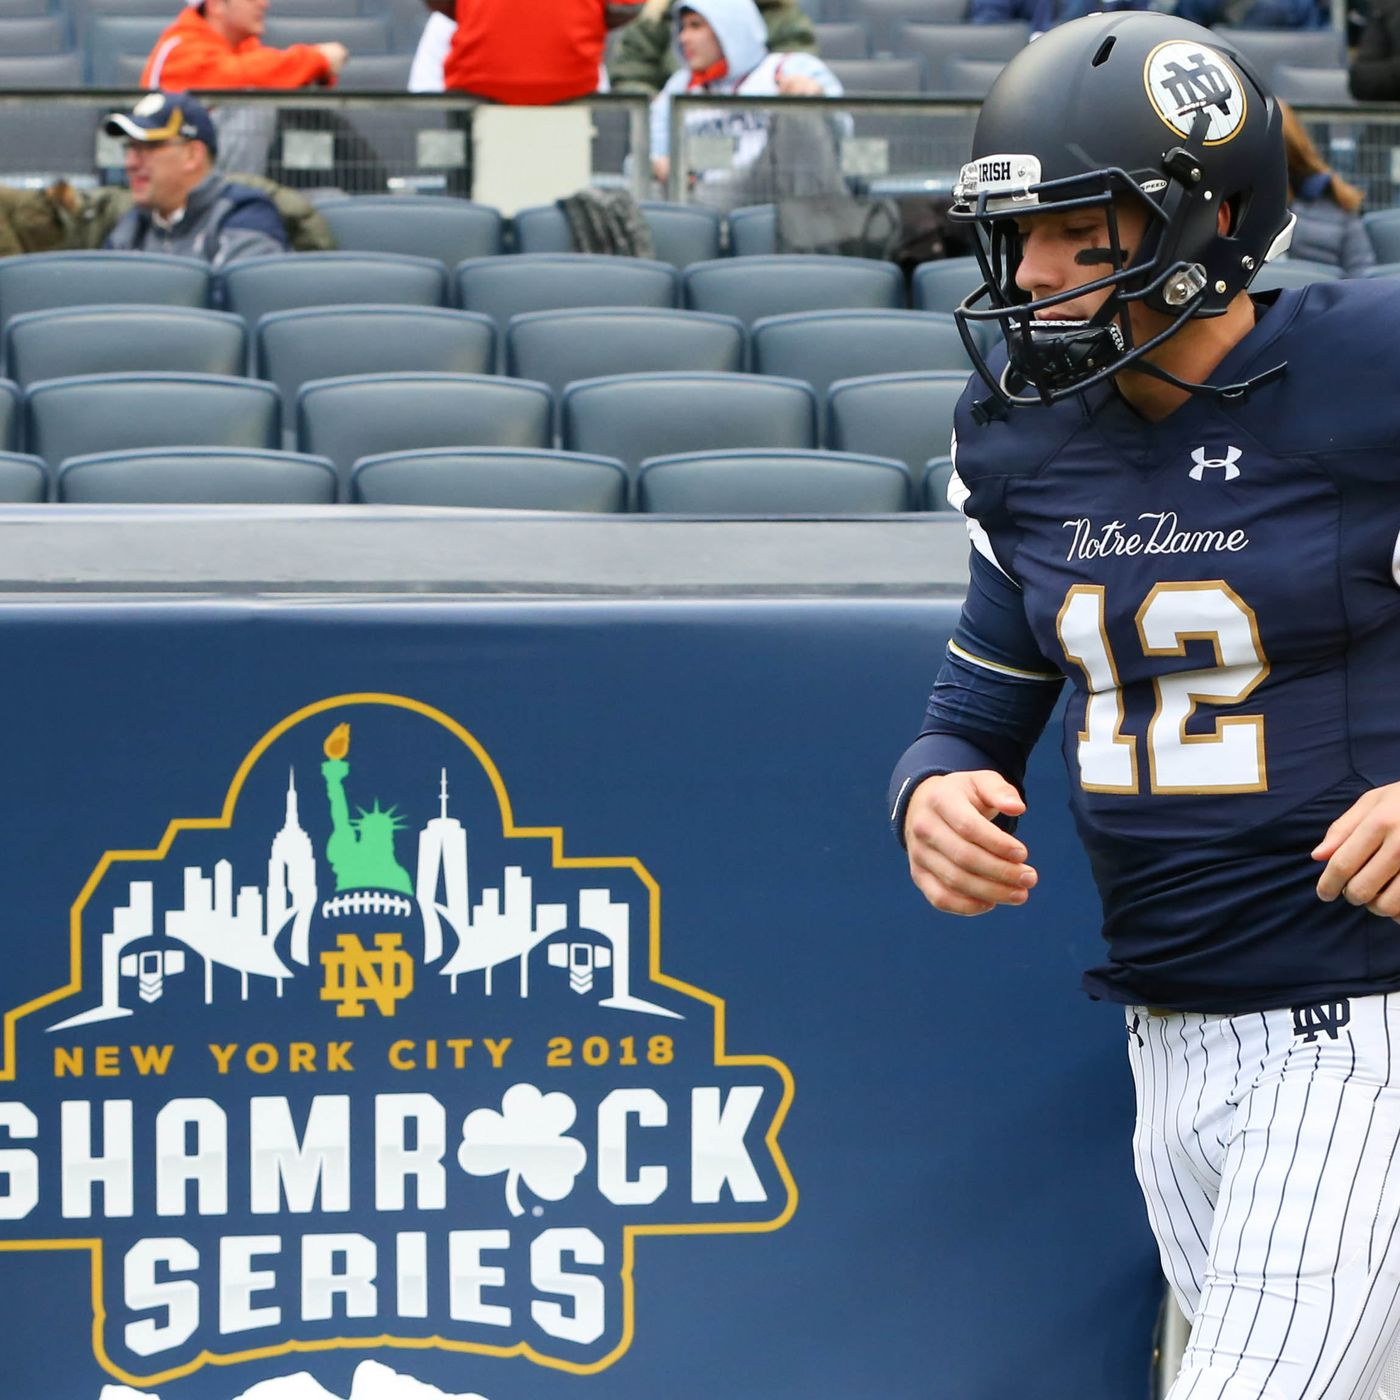 Notre Dame S Yankees Uniforms Might Be Even More Hated Than Expected Sbnation Com